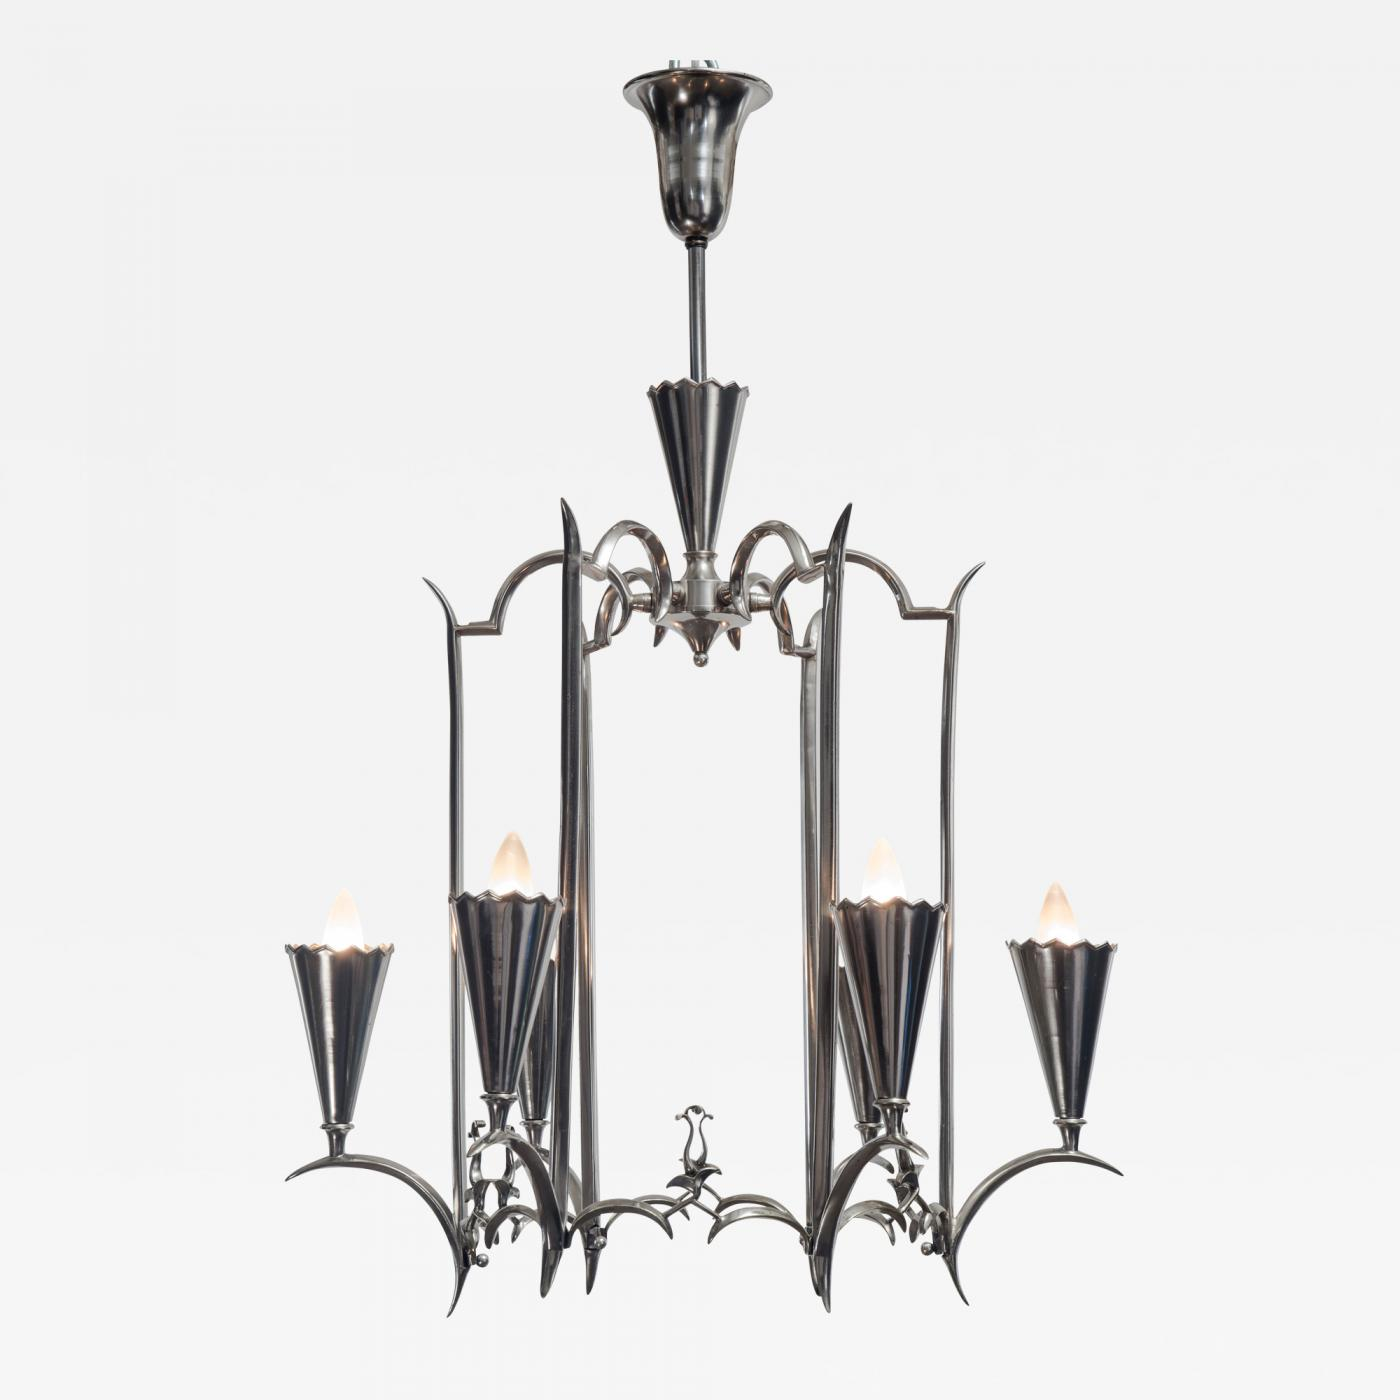 product chandelier kayden today free brushed nickel overstock quoizel home garden light shipping quoize